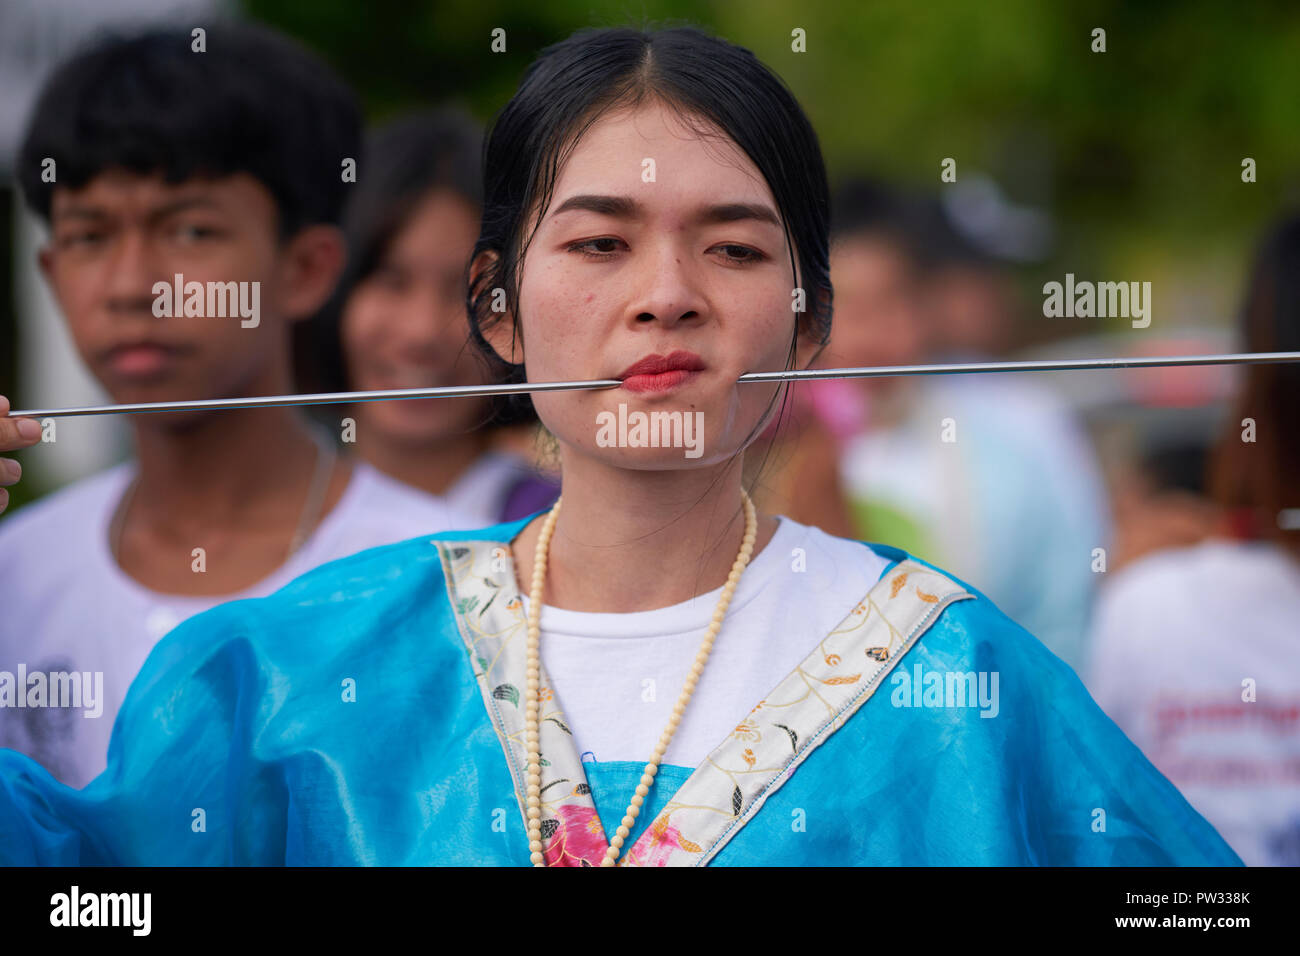 During the Vegetarian Festival in Phuket Town, Thailand, a woman in traditional Chinese dress and with pierced cheektakes on the role of spirit medium - Stock Image